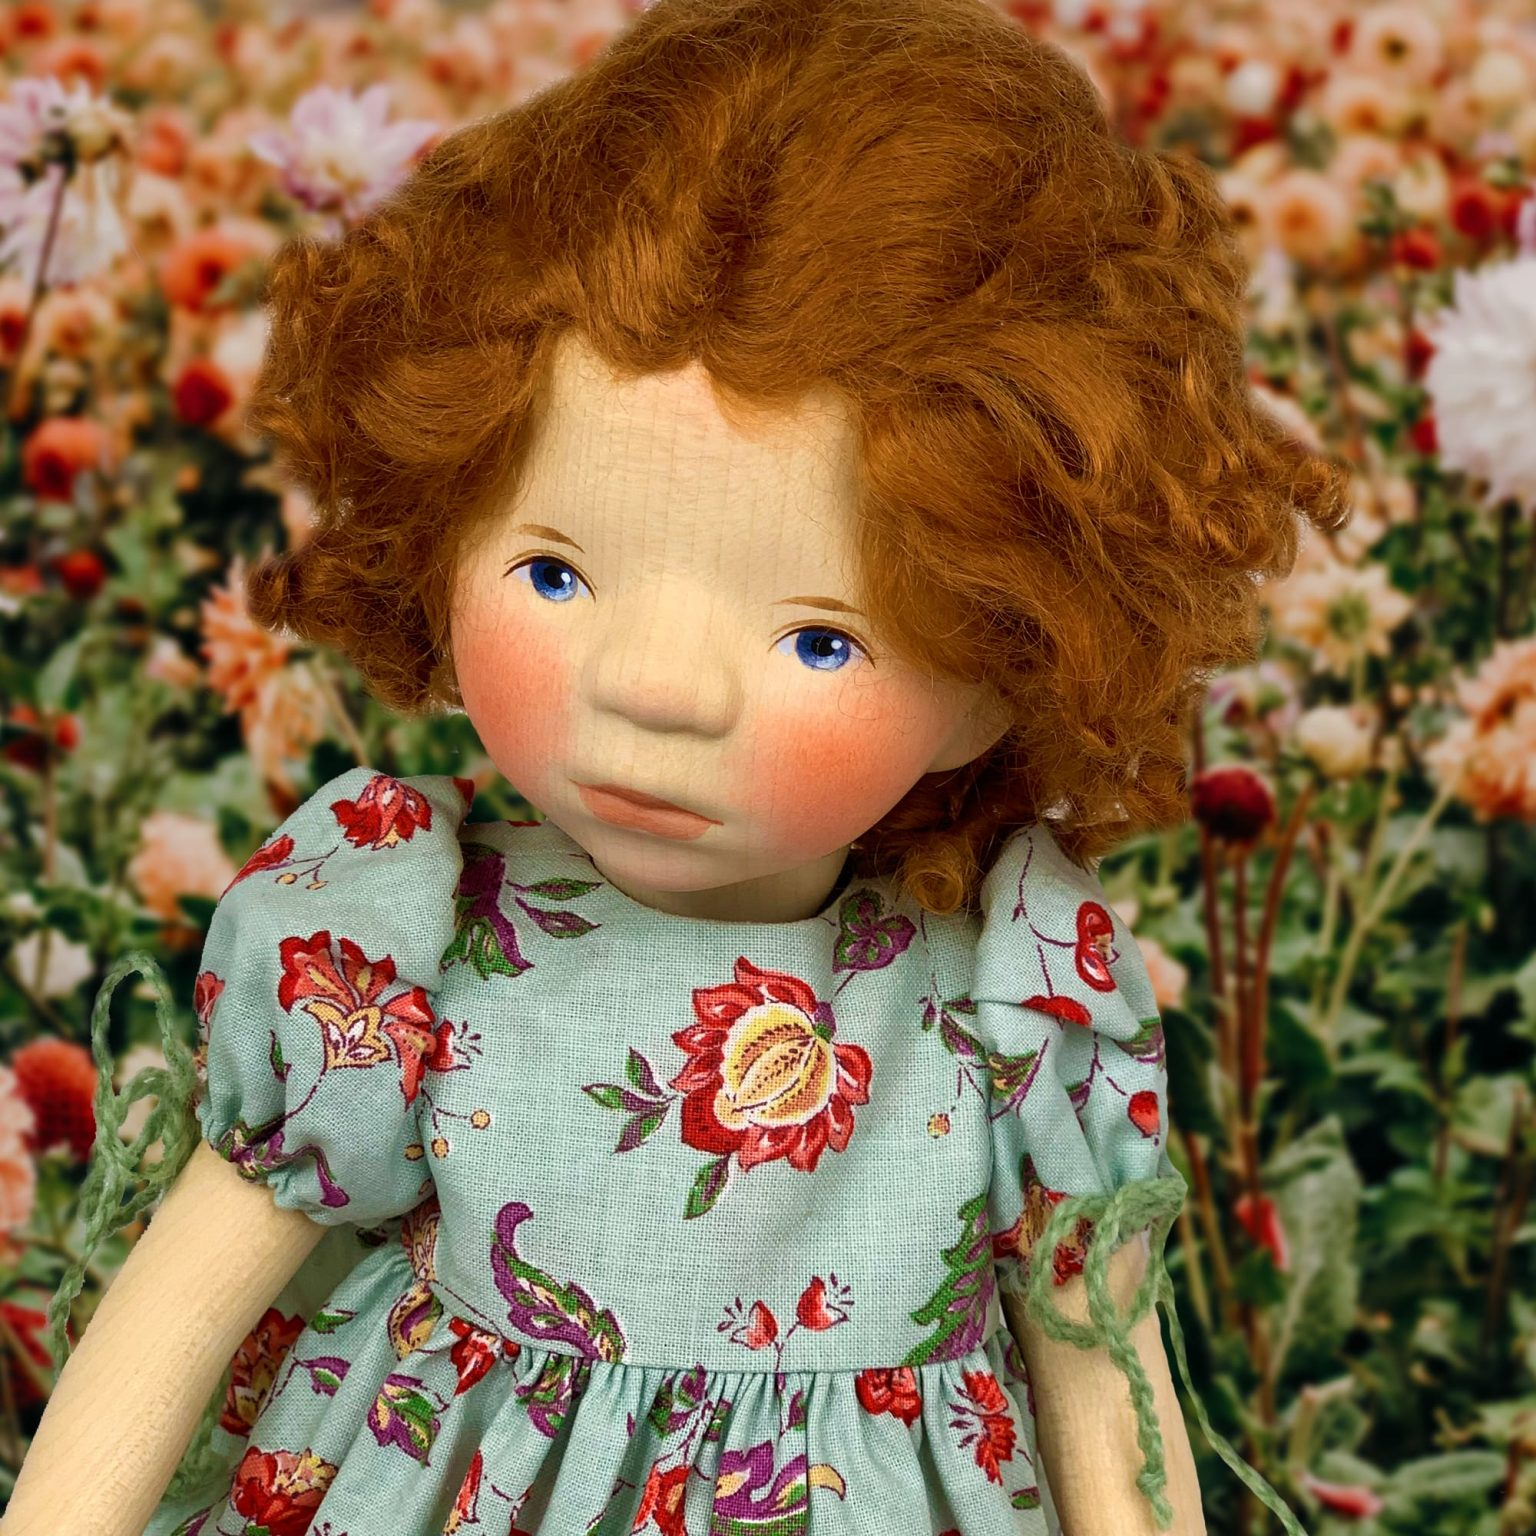 Girl In Blue Dress With Red Curly Hair Artist Doll Elisabeth Pongratz Mary Shortle